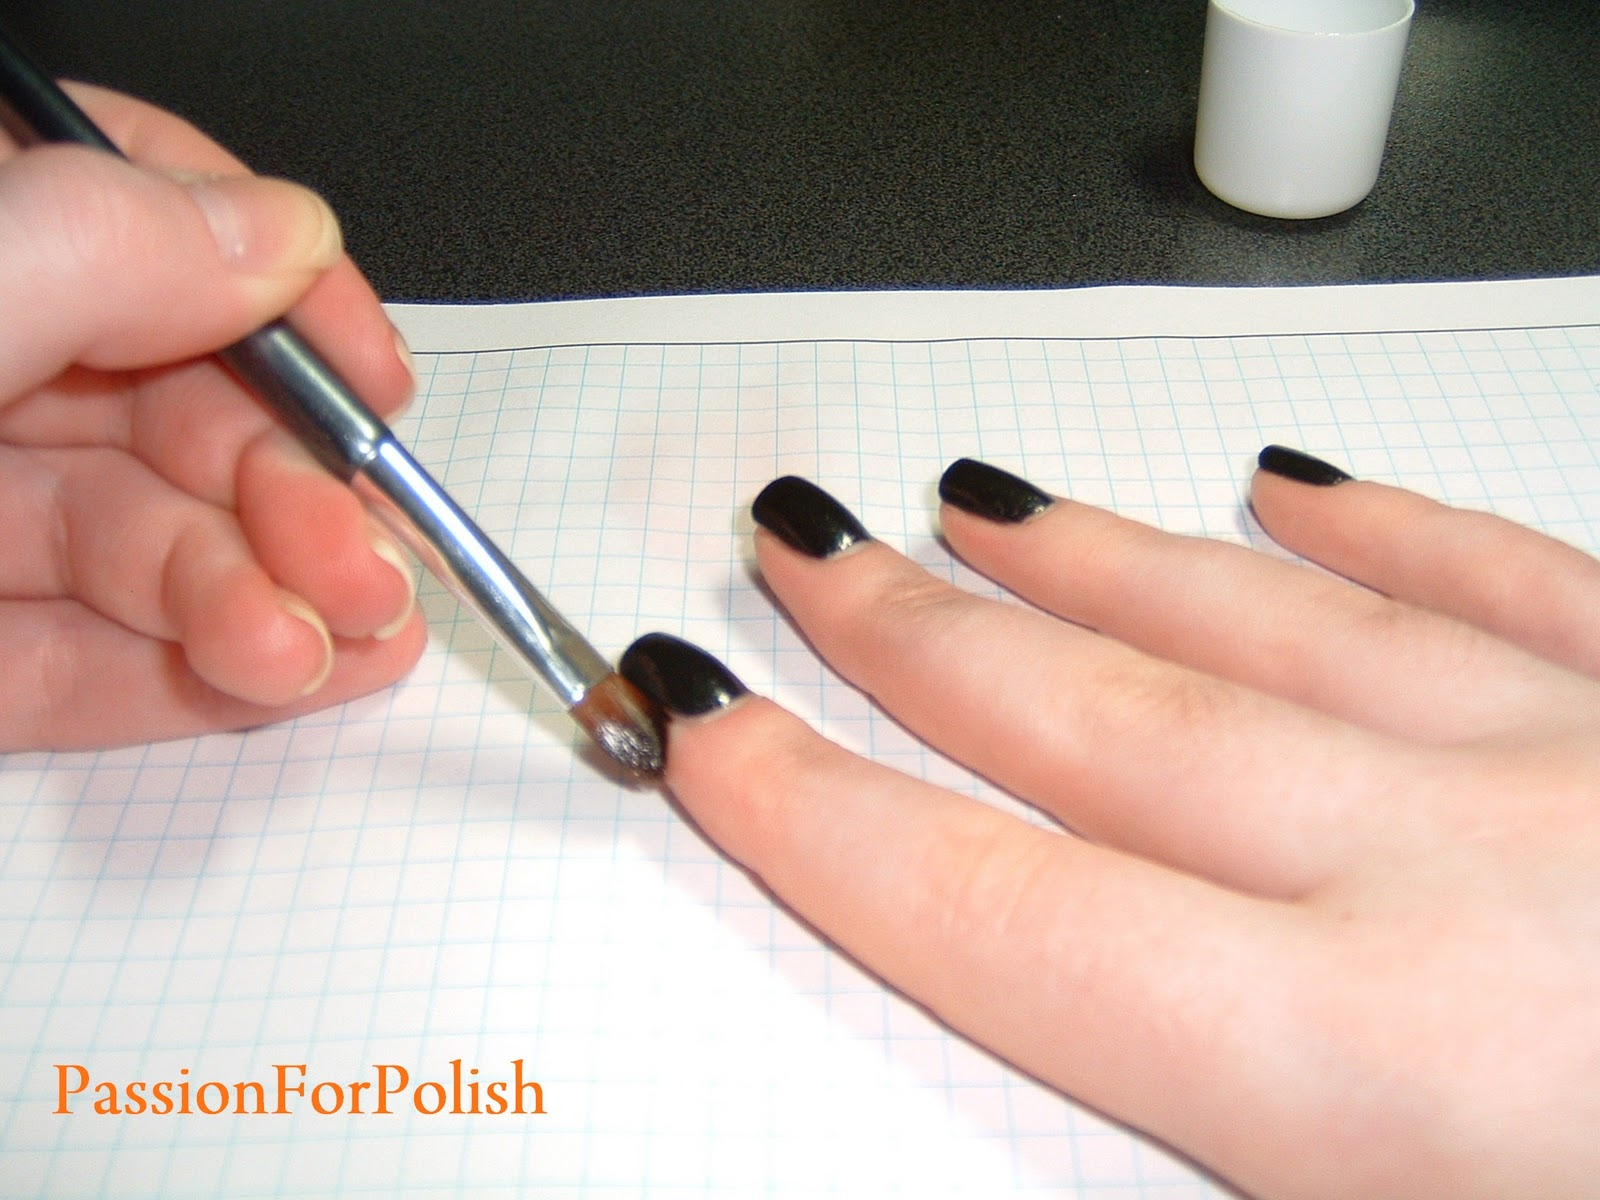 Passionforpolish How To Clean Up Your Manicure